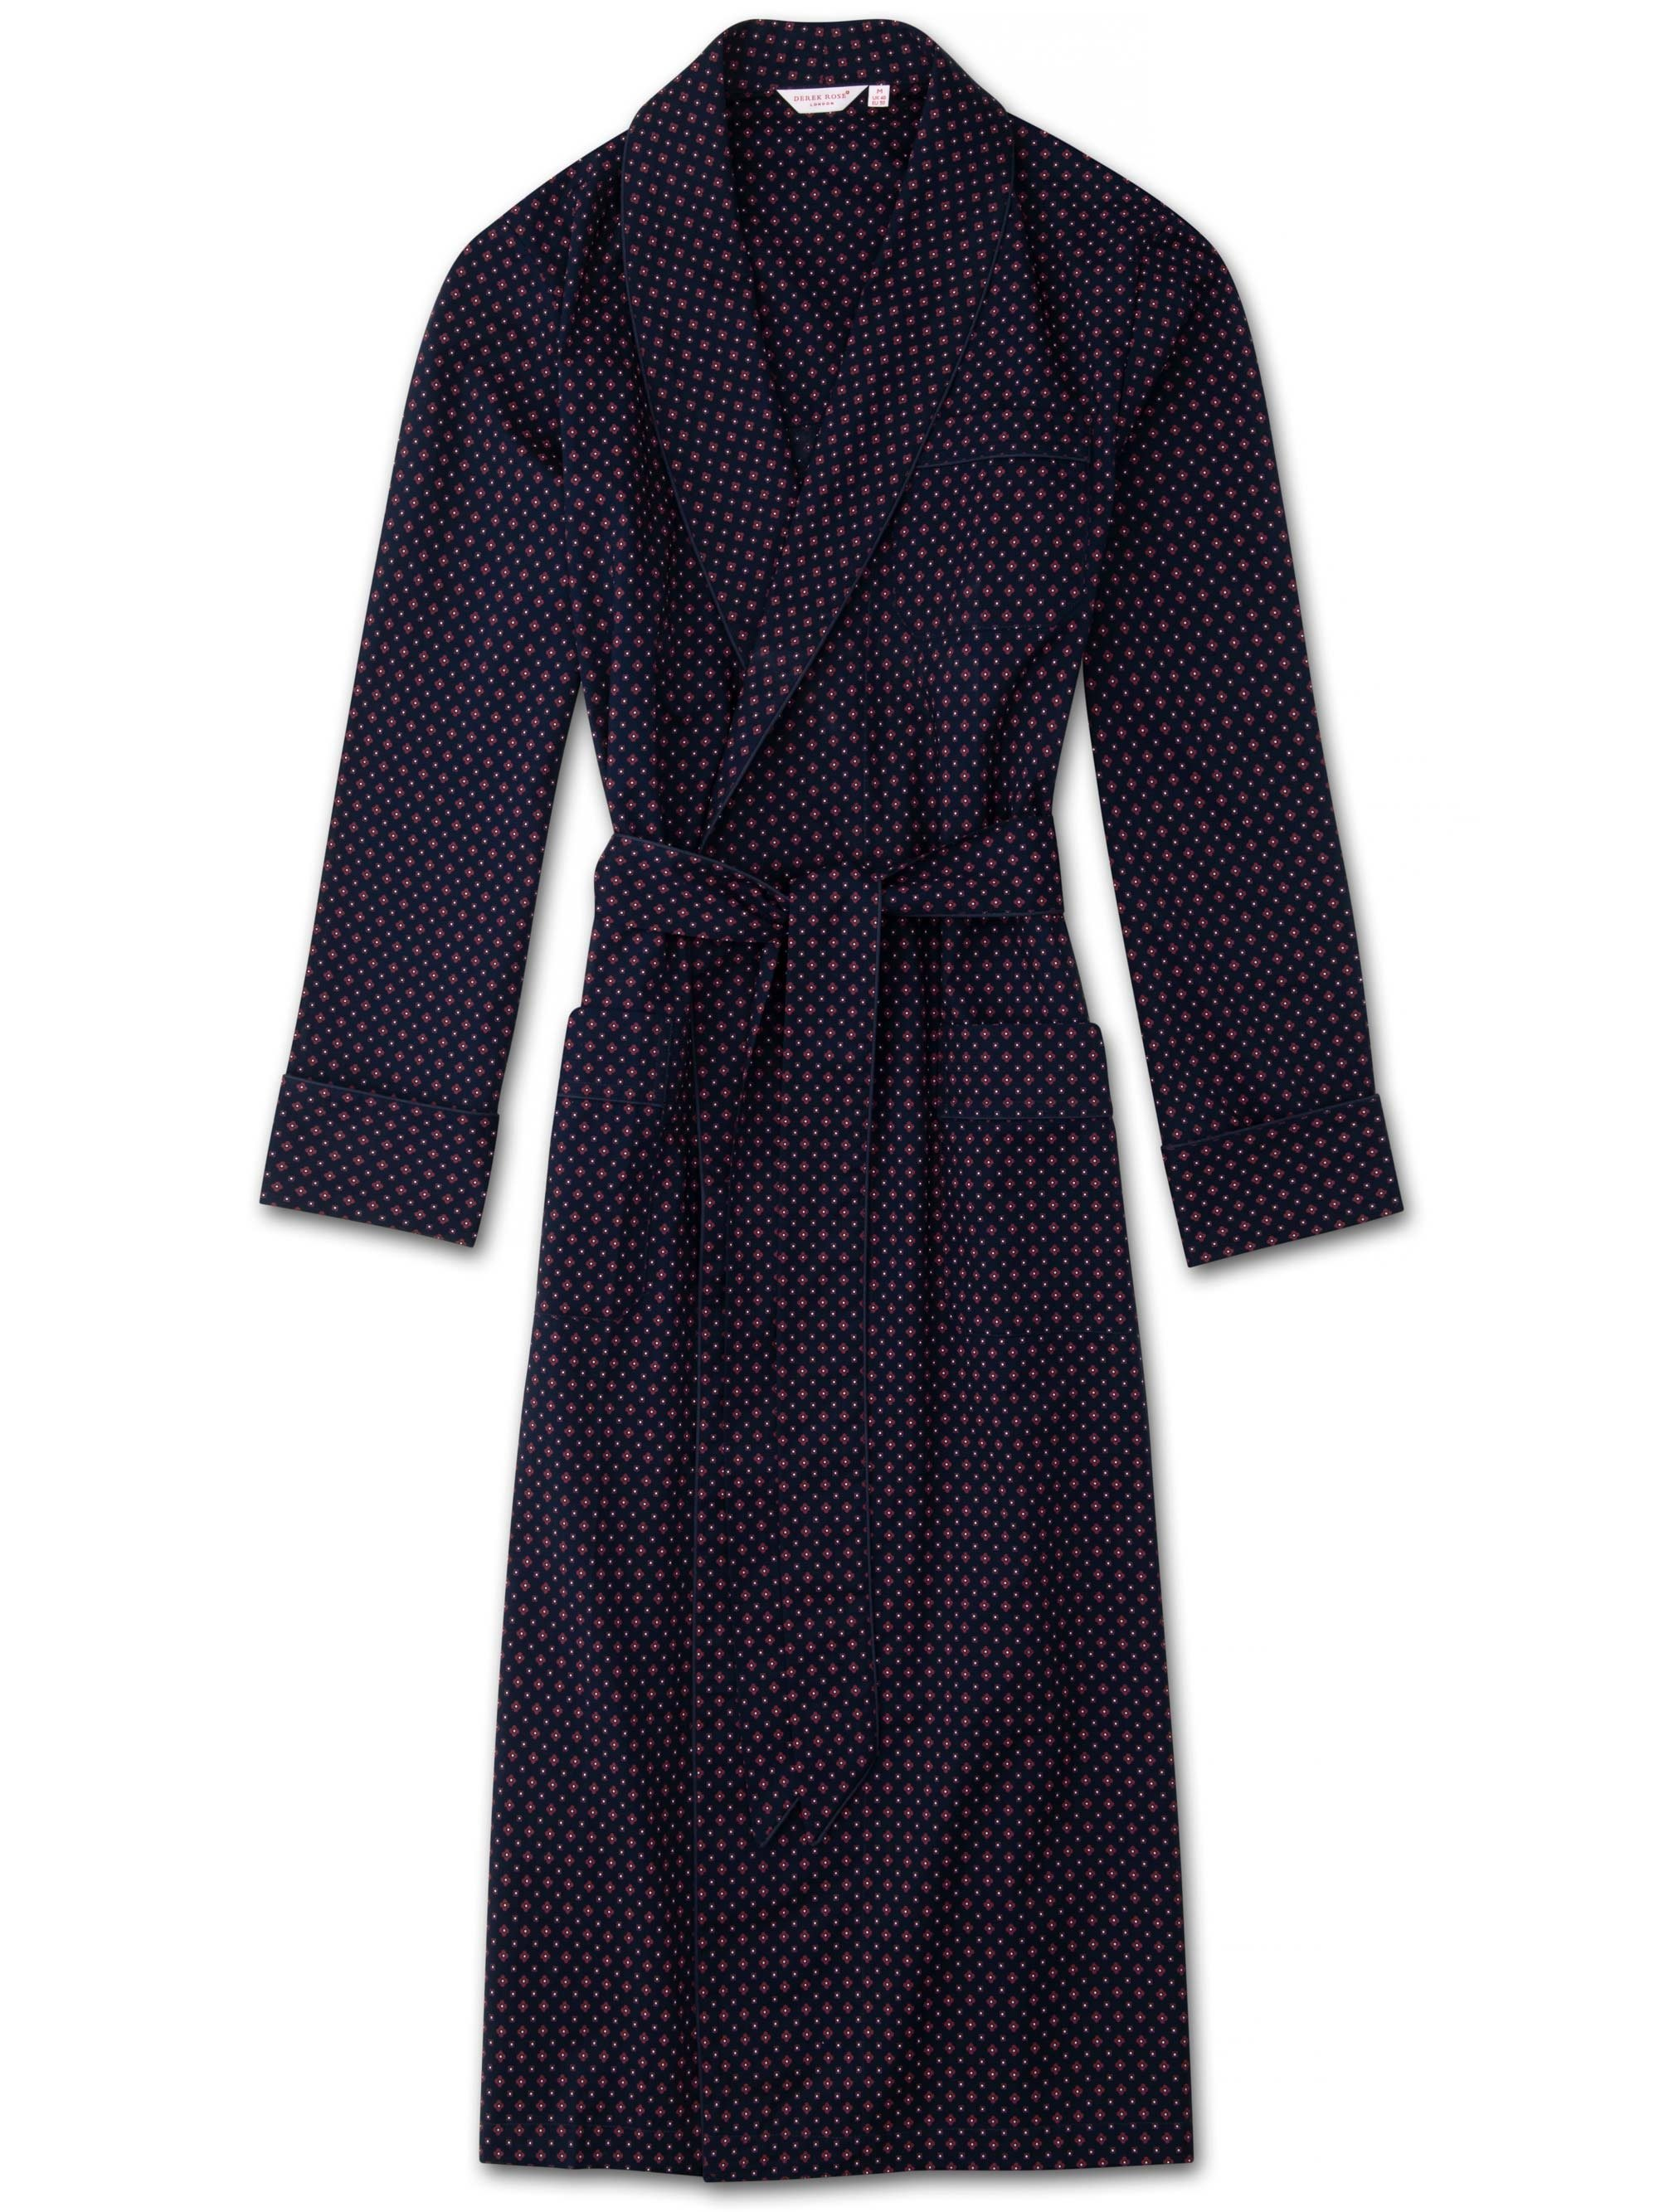 Men's Piped Dressing Gown Nelson 72 Cotton Batiste Navy